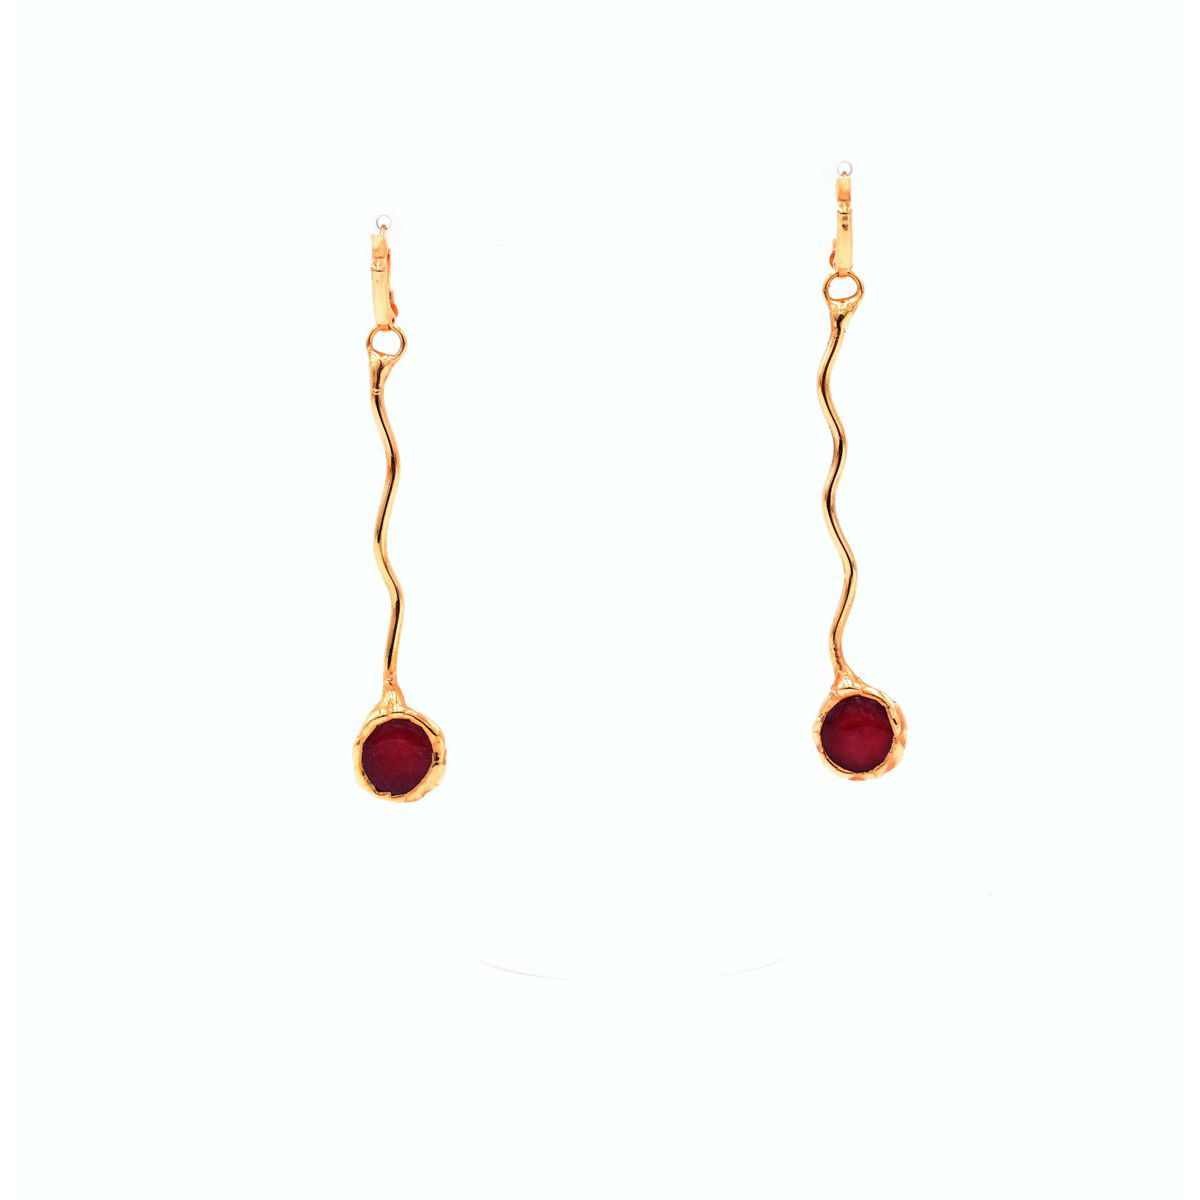 GOLD PENDULOUS EARRINGS WITH RUBY Gold BRASS Gioielli